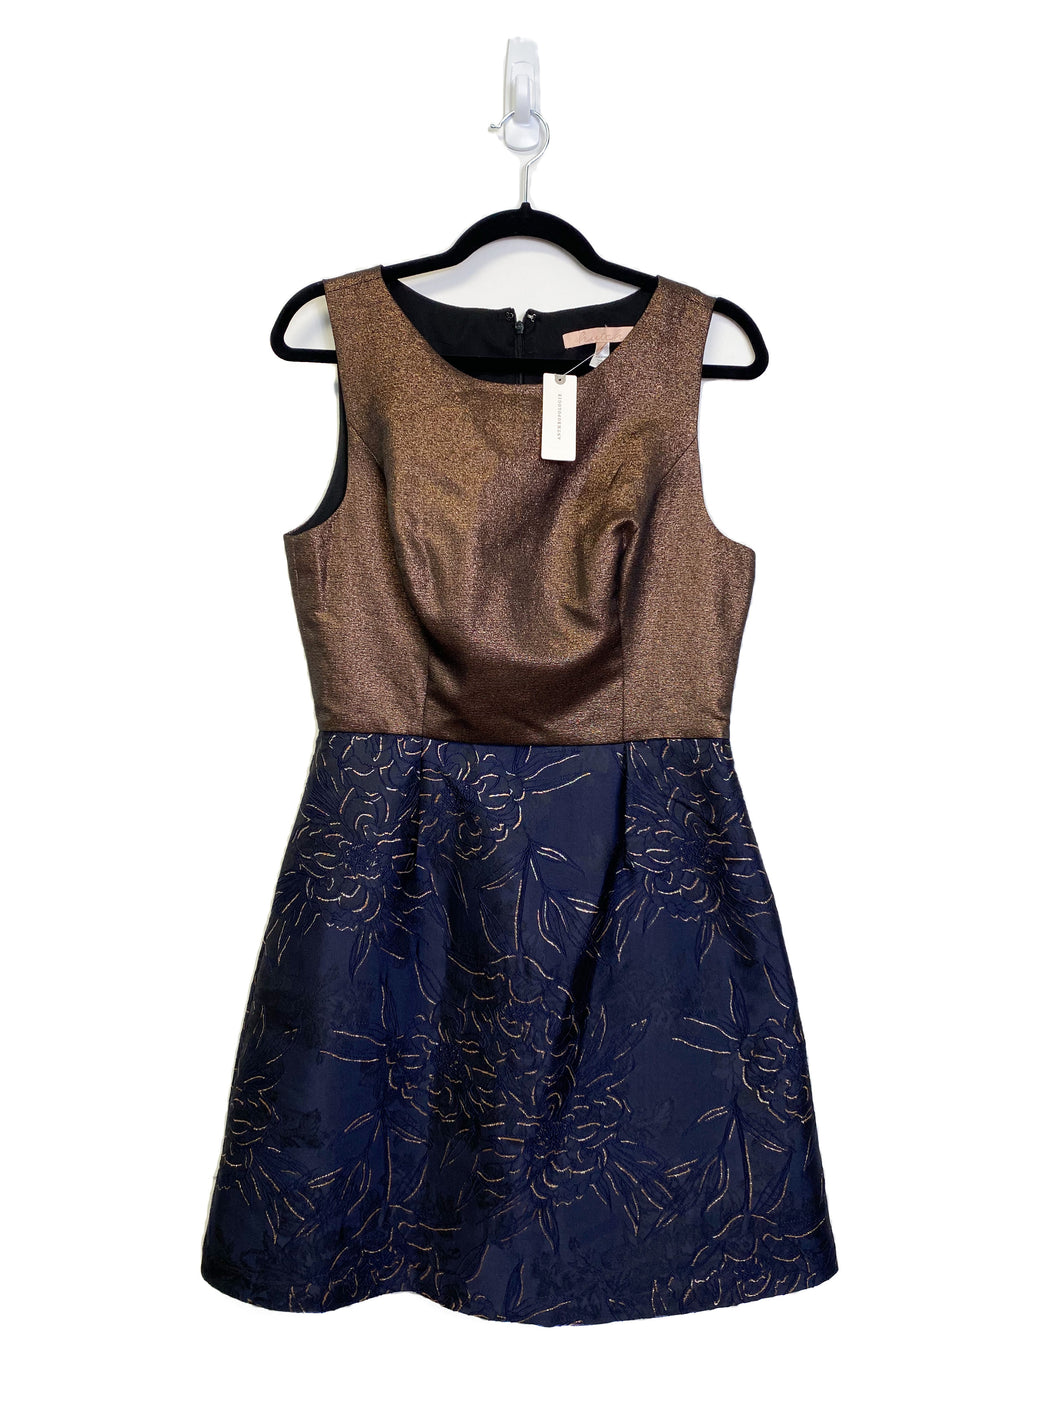 *New* Hutch Dress (10)